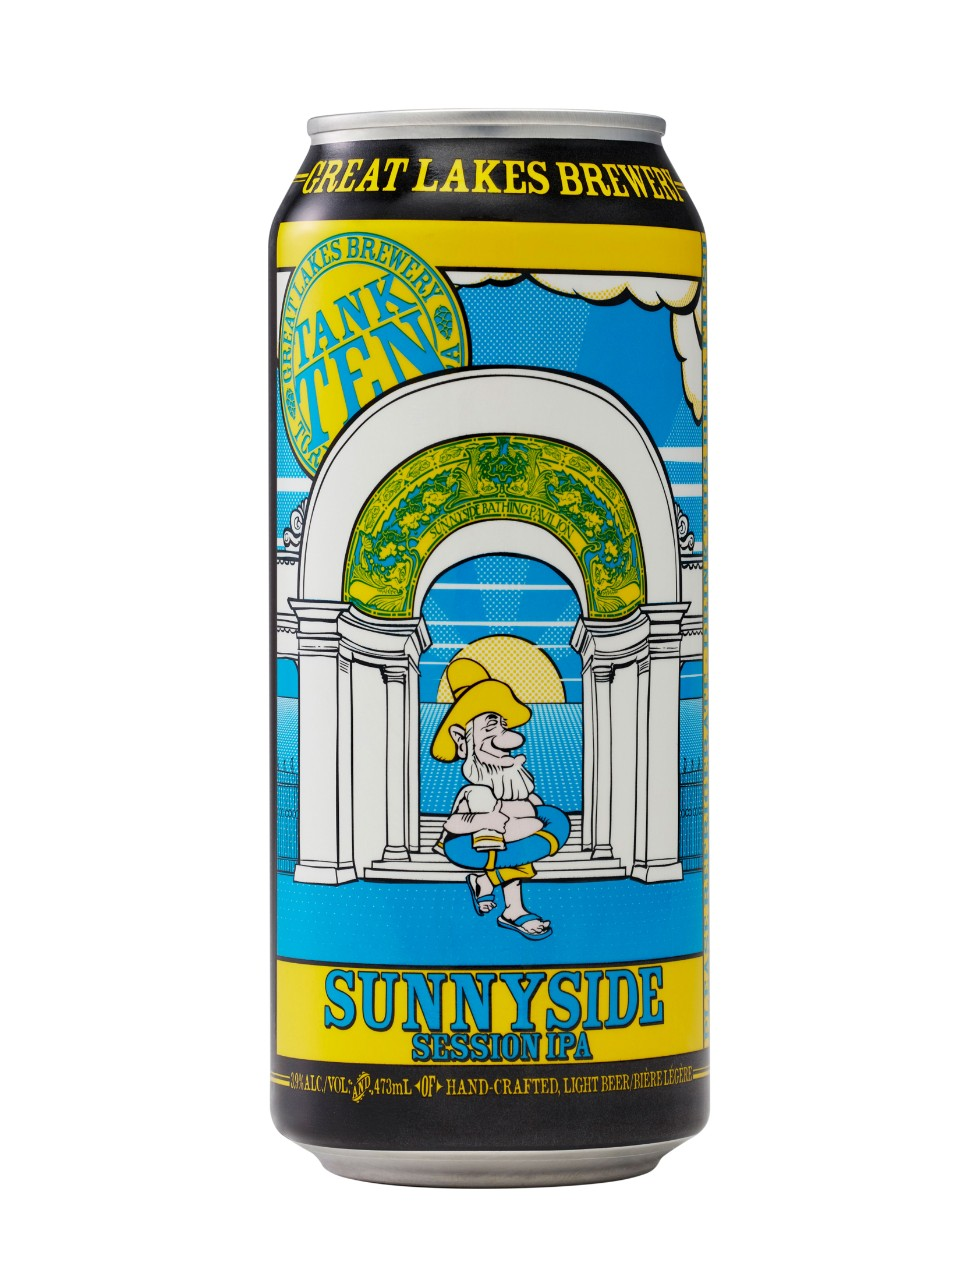 Great Lakes Brewery Sunnyside Session IPA from LCBO